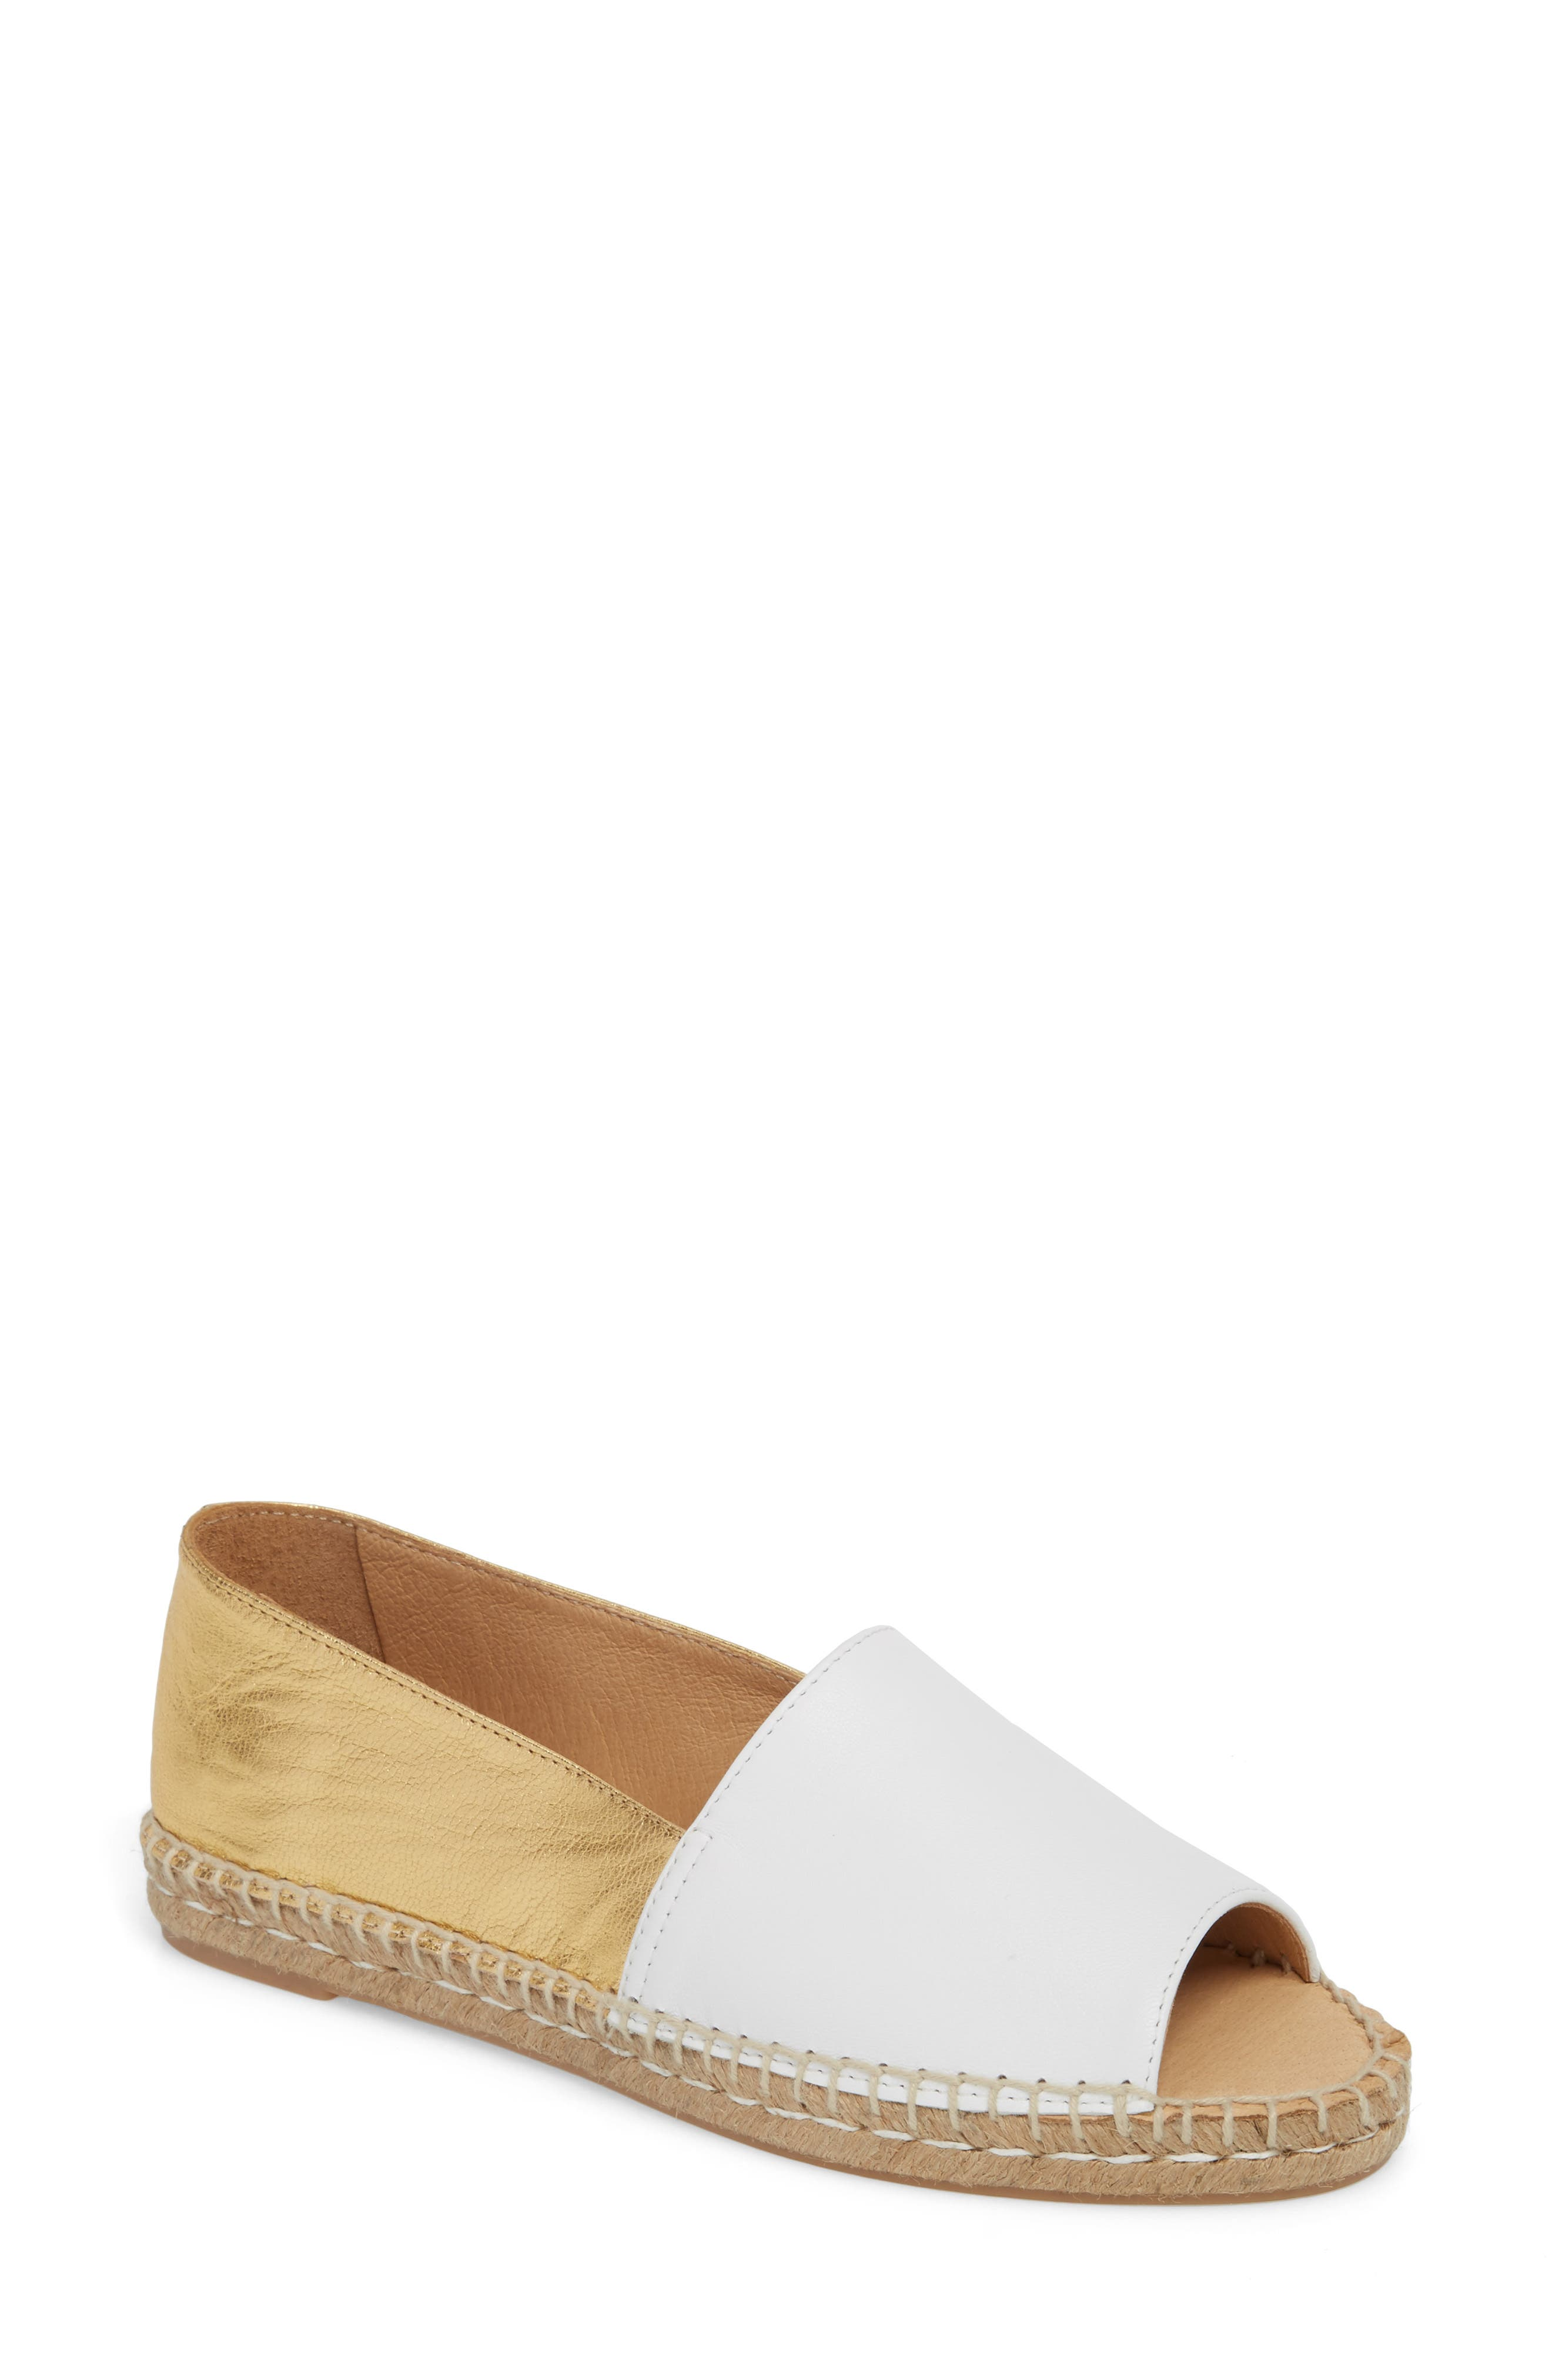 Milly Espadrille,                         Main,                         color, Gold Leather